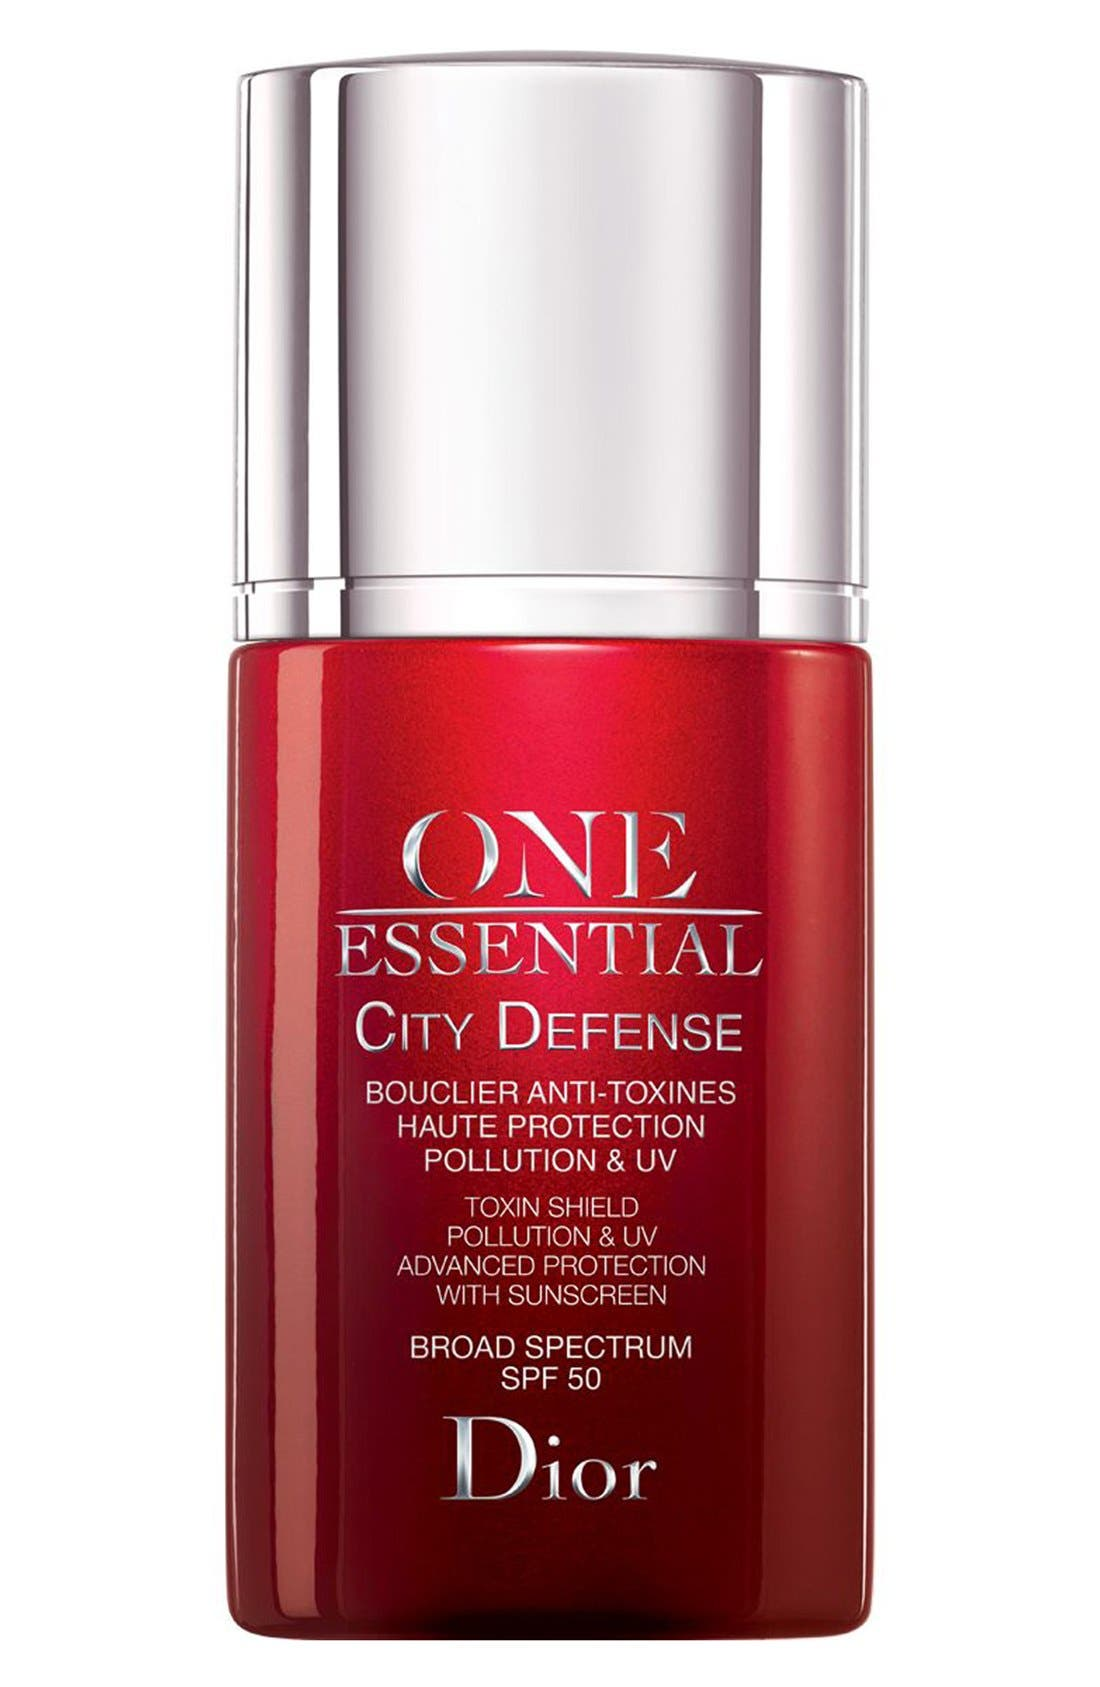 Dior 'One Essential' City Defense Toxin Shield Pollution & UV Advanced Protection SPF 50